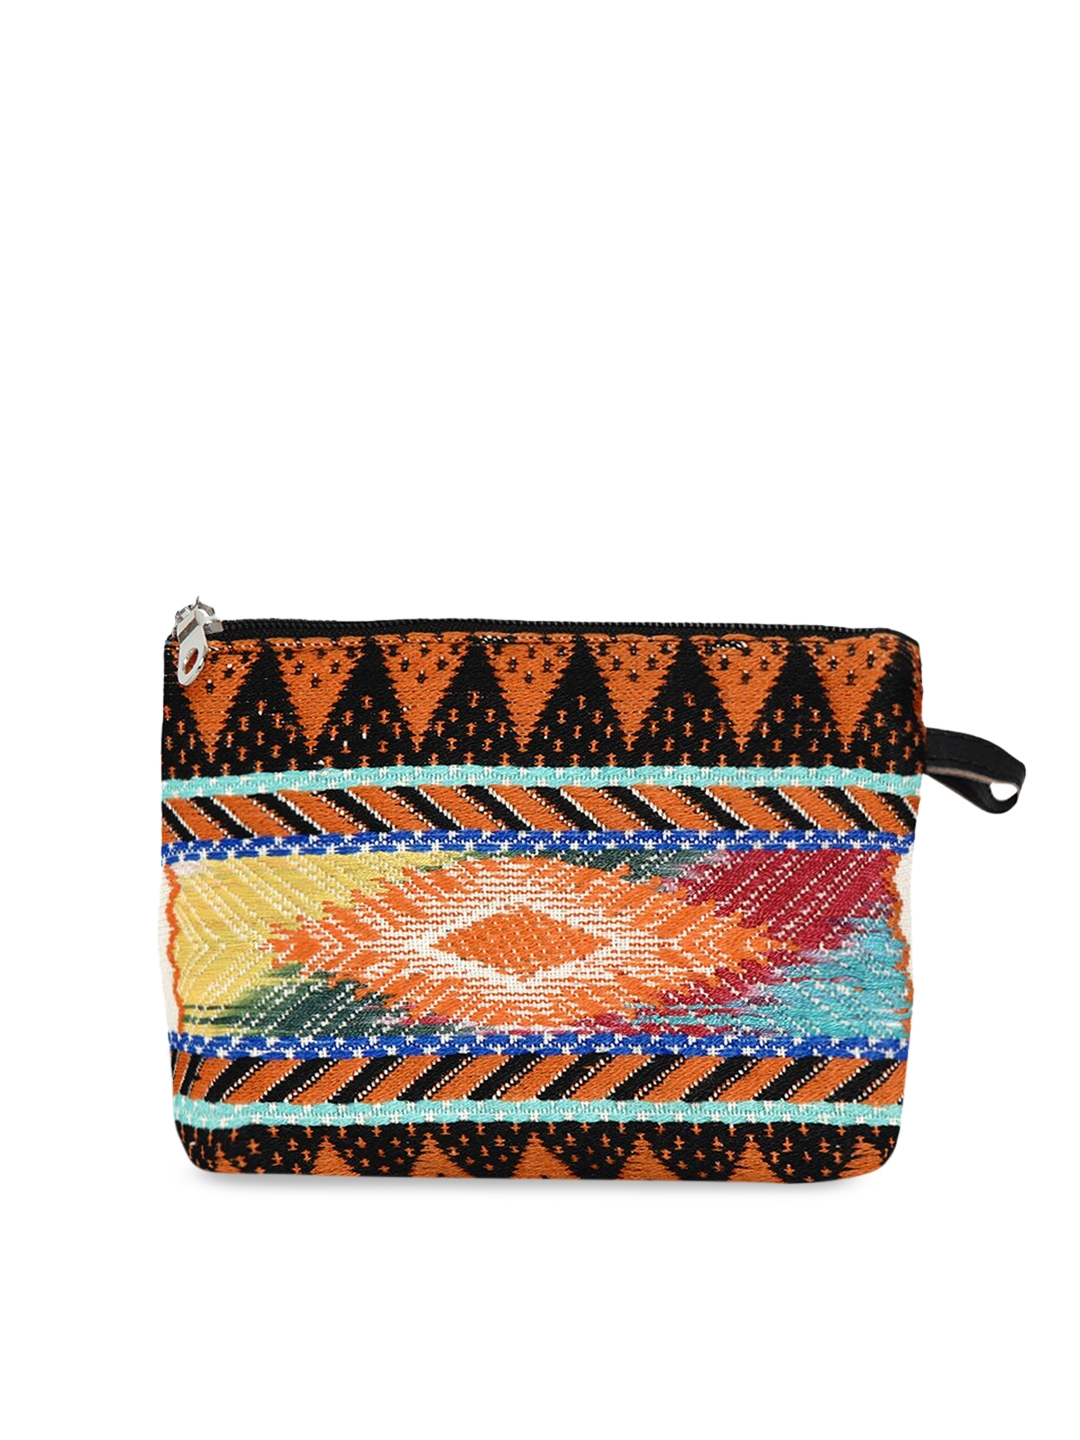 Anekaant Women Orange   Black WovenDesign Cosmetic Pouch